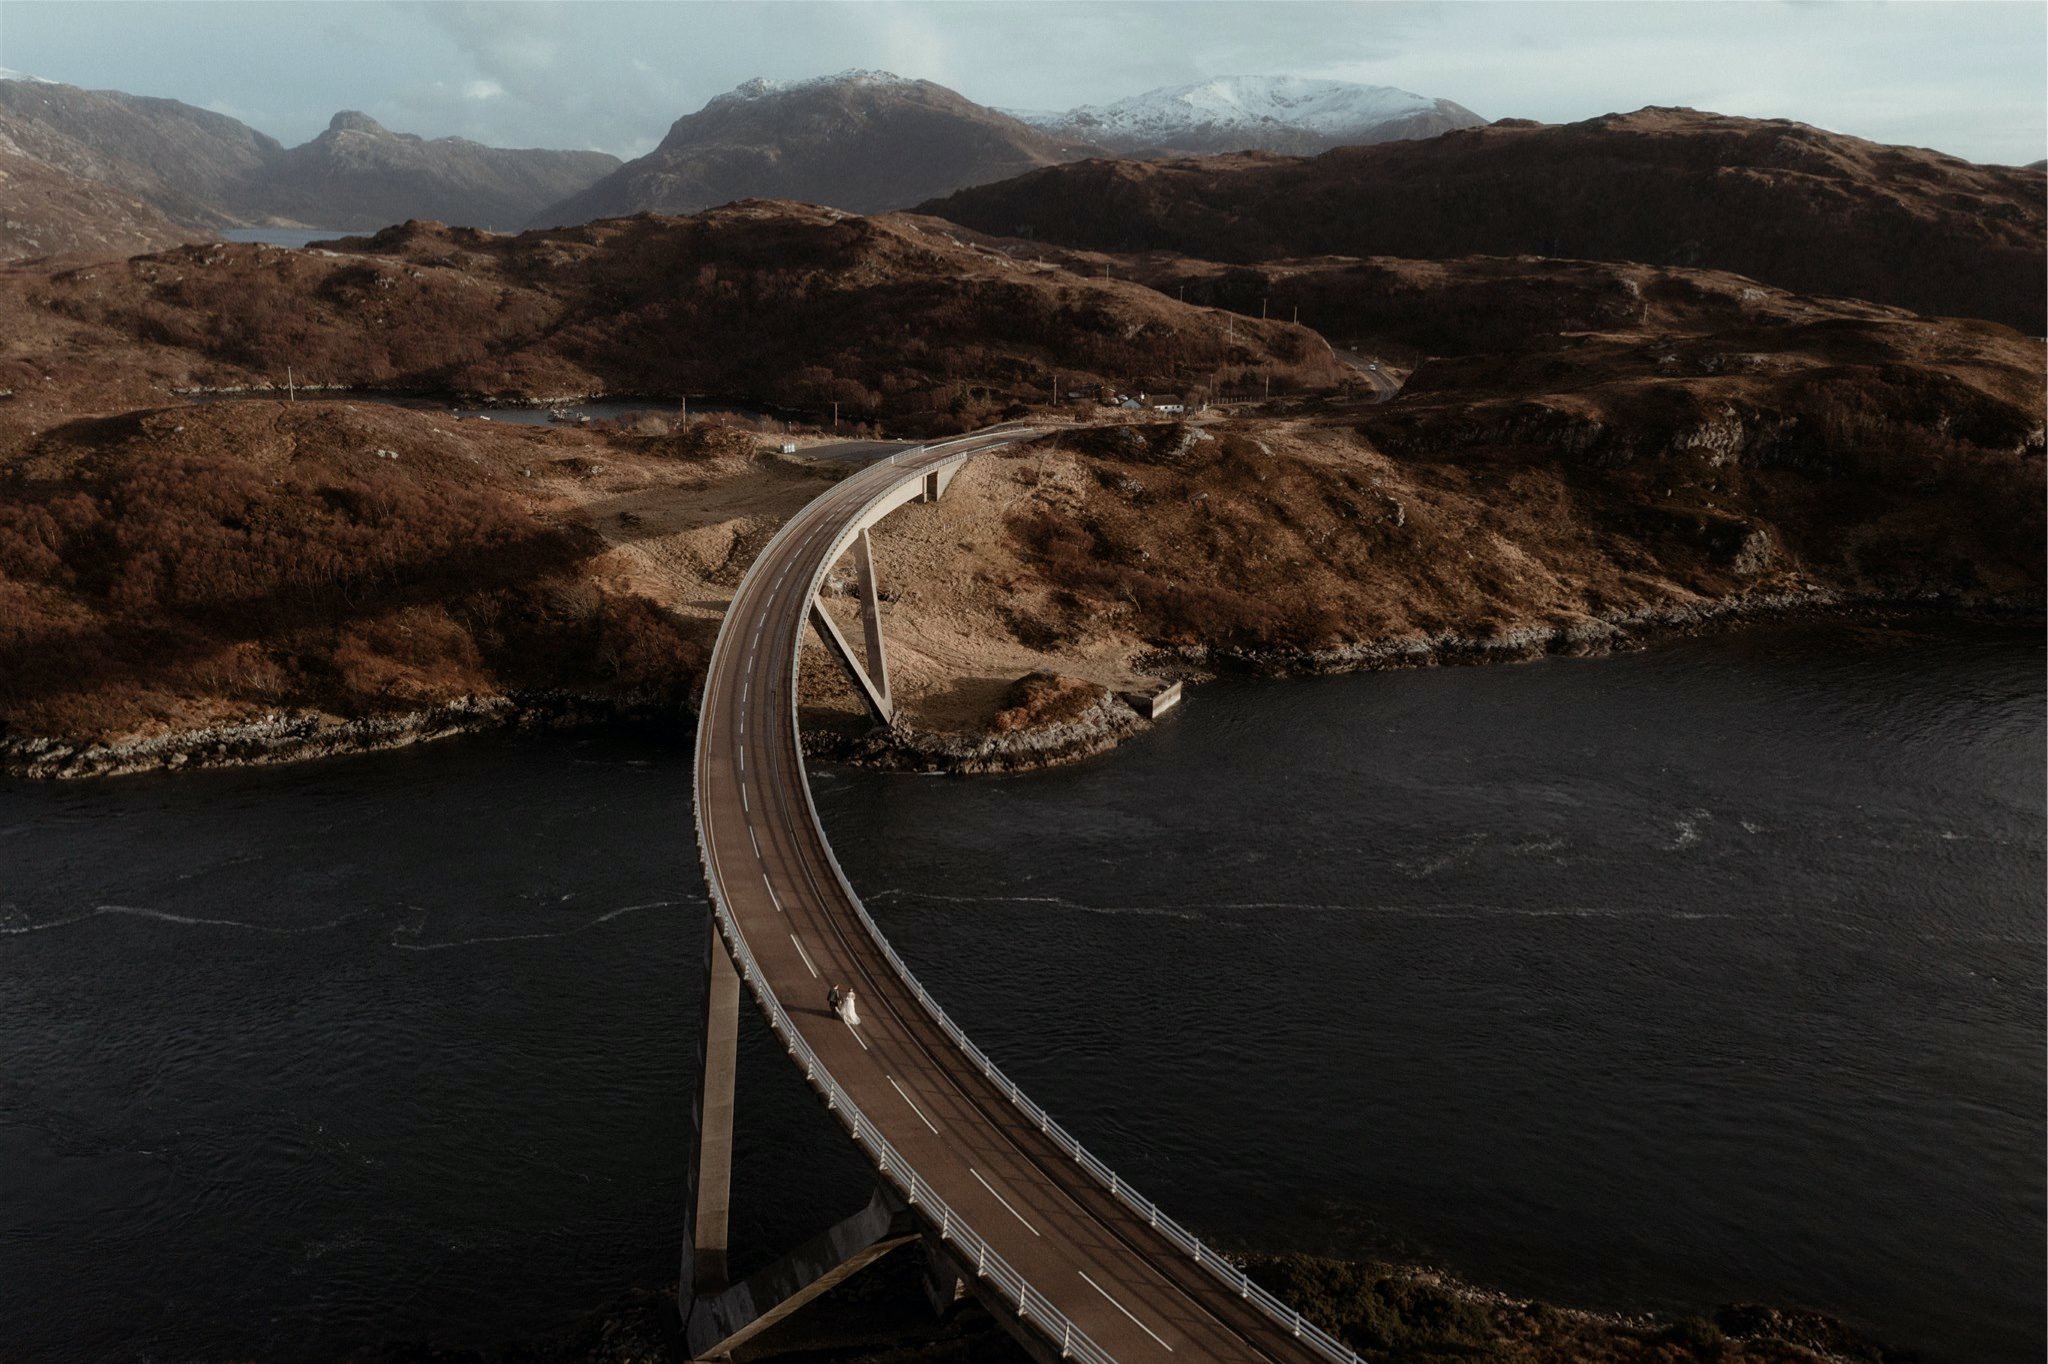 Drone shot of a bride and groom walking over a bride over a river in Assynt, Scotland